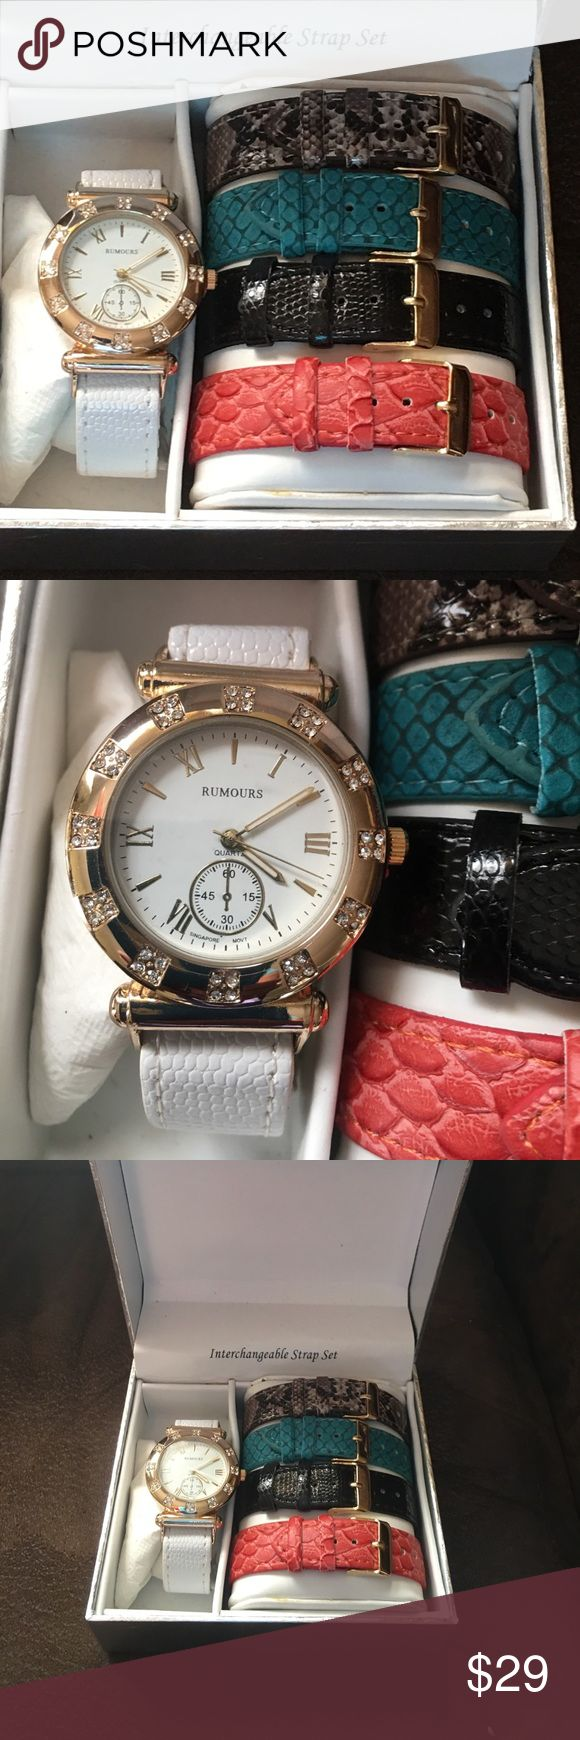 Rumors gold tone with rhinestone accents watch set Beautiful Rumors watch set comes with 5 interchangeable watch bands!! One white red, black,  turquoise, and a reptile brown print. Comes NIB PERFECT FOR CHRISTMAS GIFT GIVING.  needs battery. Rumors Accessories Watches